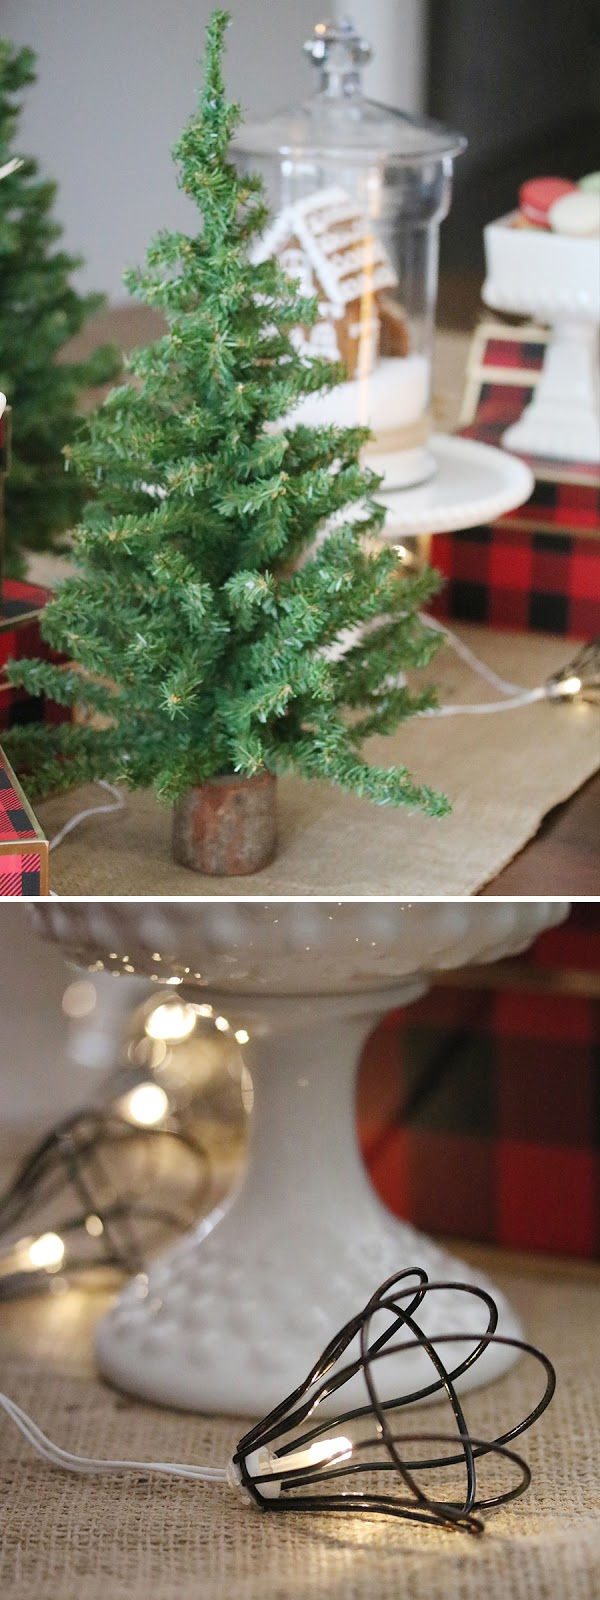 home for the holidays - set up a sweet table | Lorrie Everitt Studio